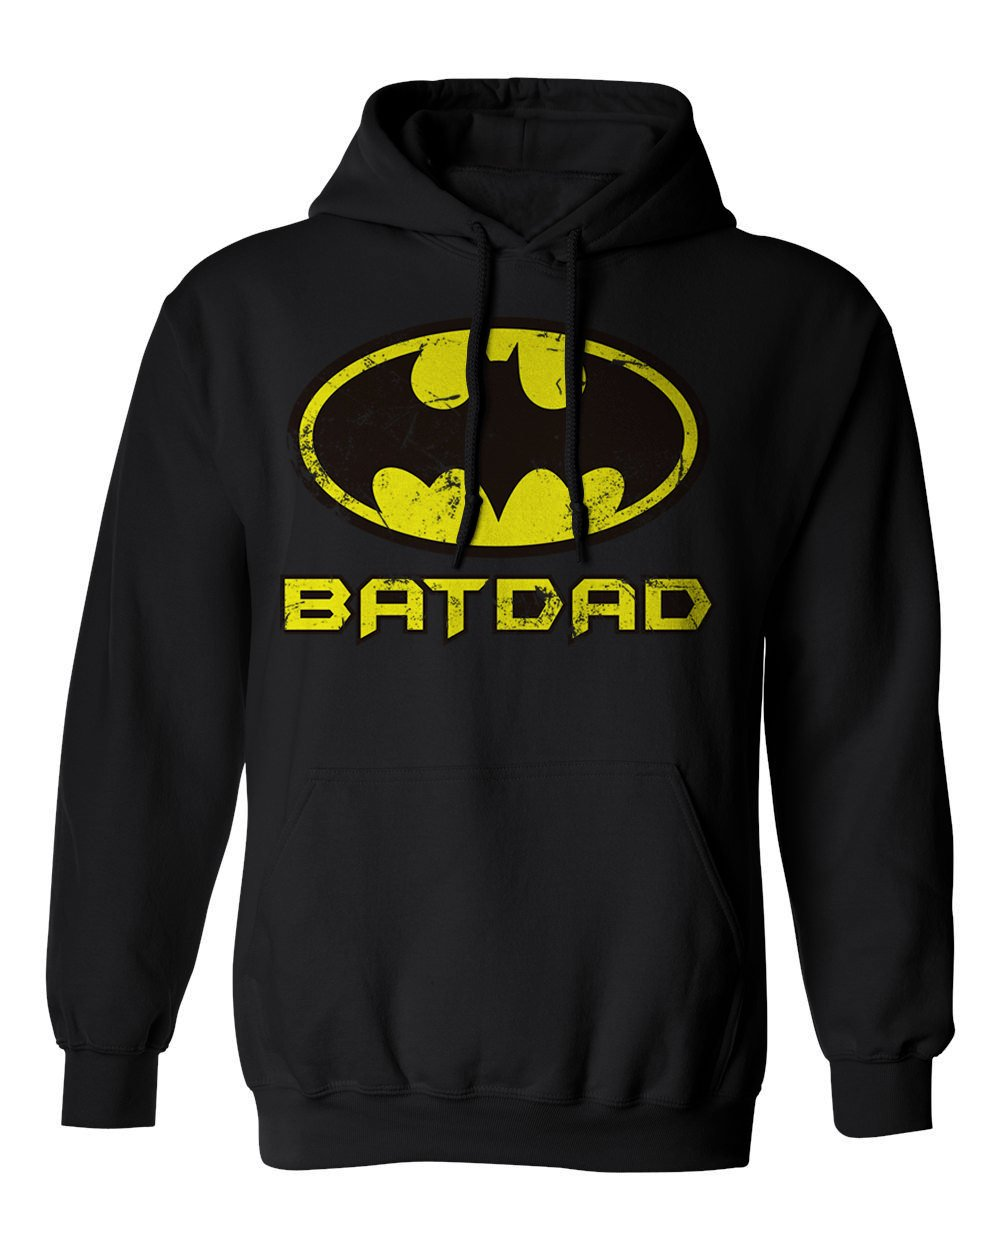 New Graphic Shirt Bat Dad Fathers Day Gift Novelty Tee Batman S Hooded